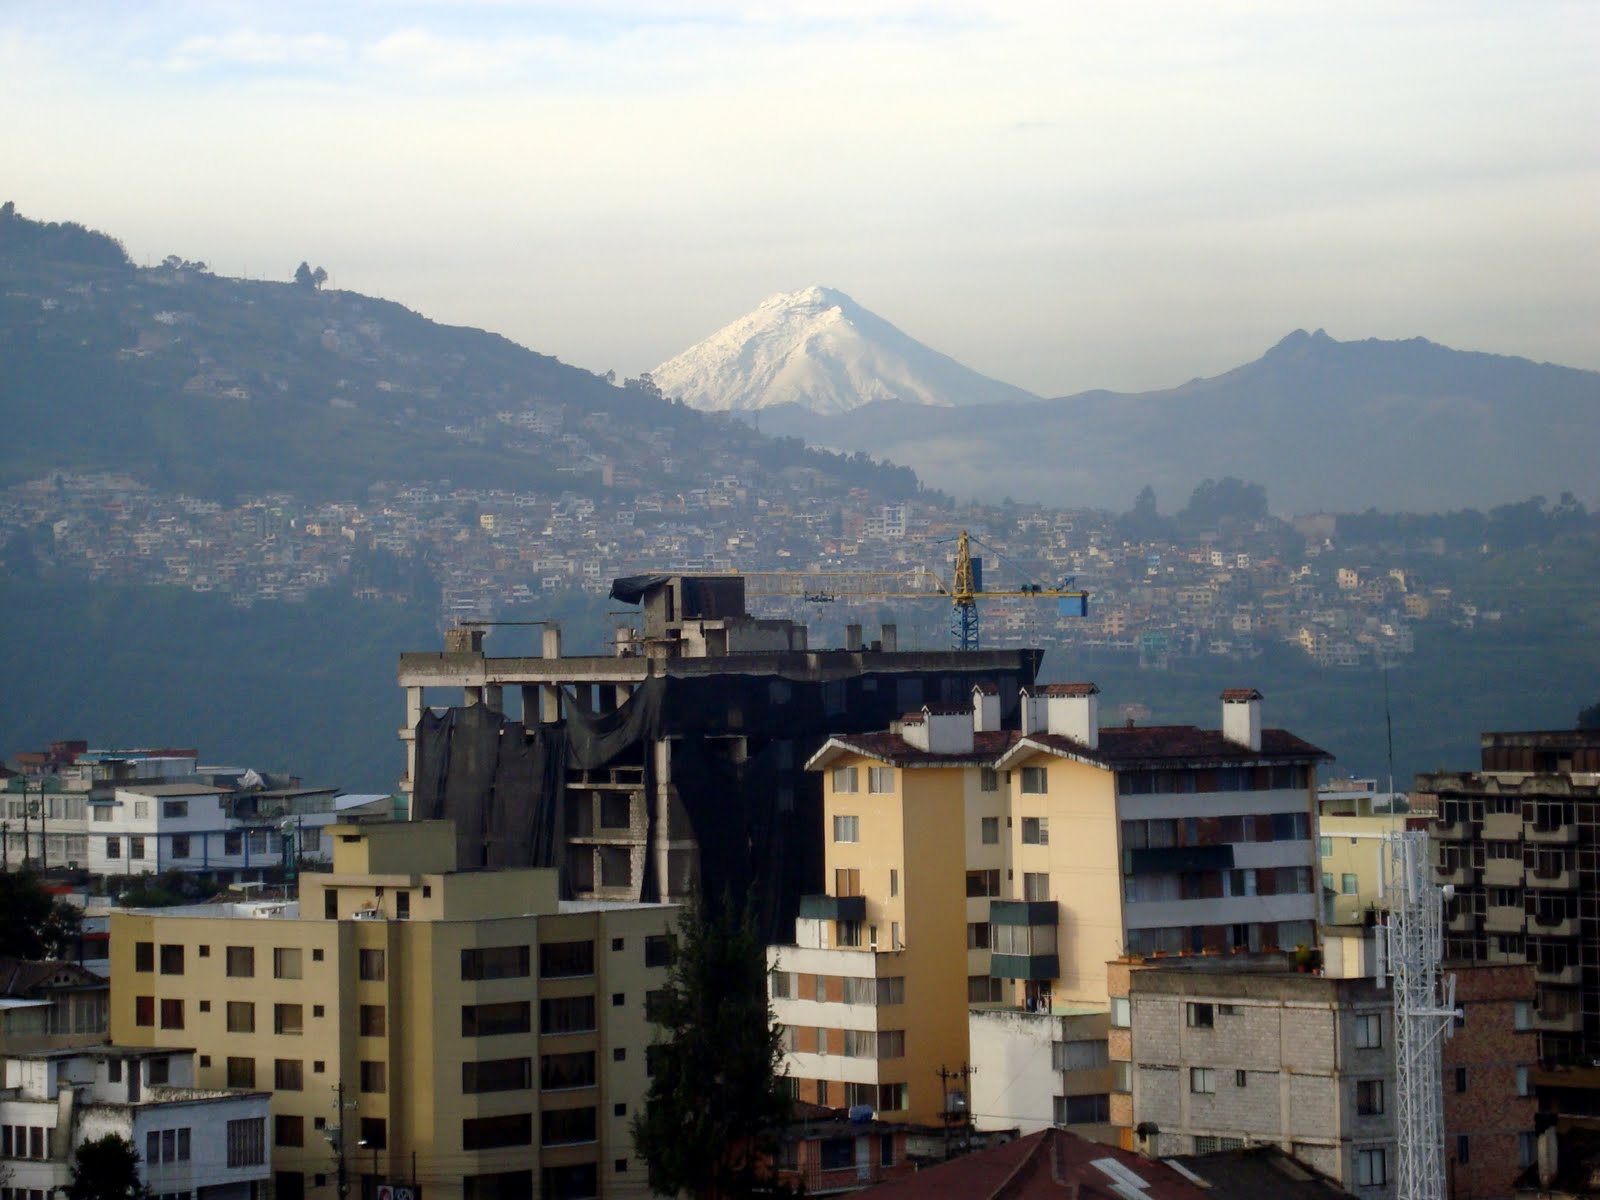 What Islands Are About  Miles West Of Quito Ecuador